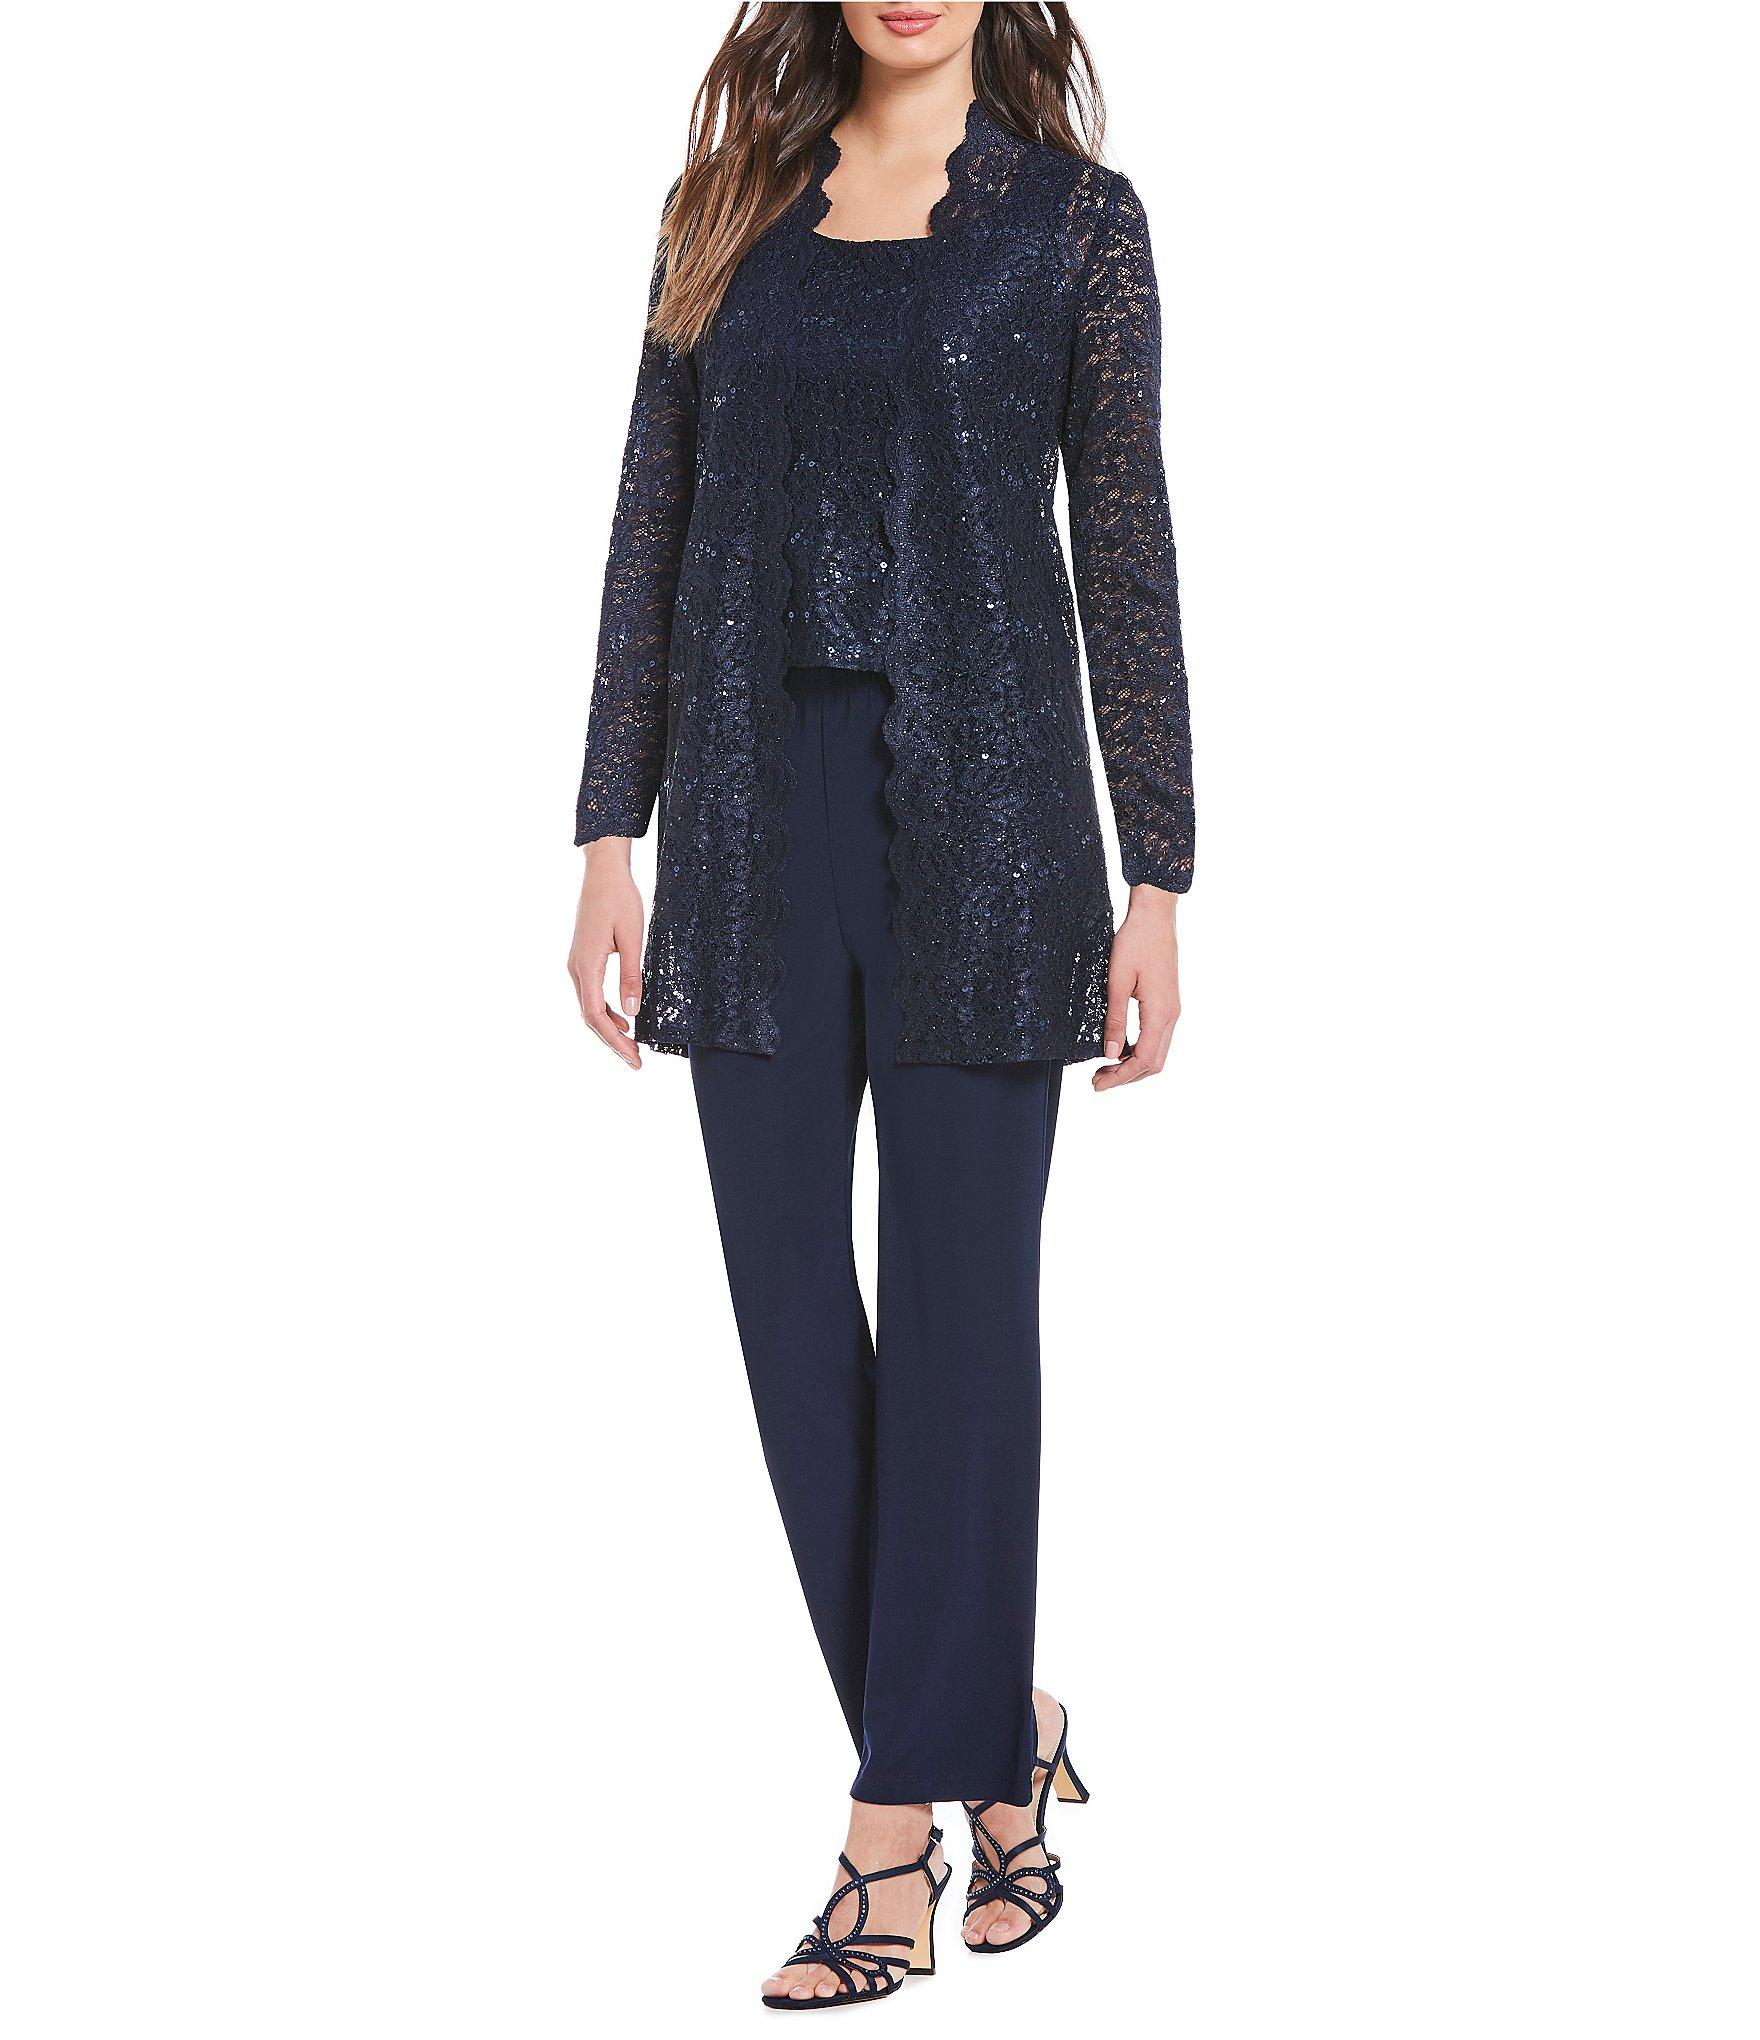 2ec145c874 R   M Richards. Women s Blue Petite 3-piece Scalloped Glitter Lace Duster  Stretch Pant Set